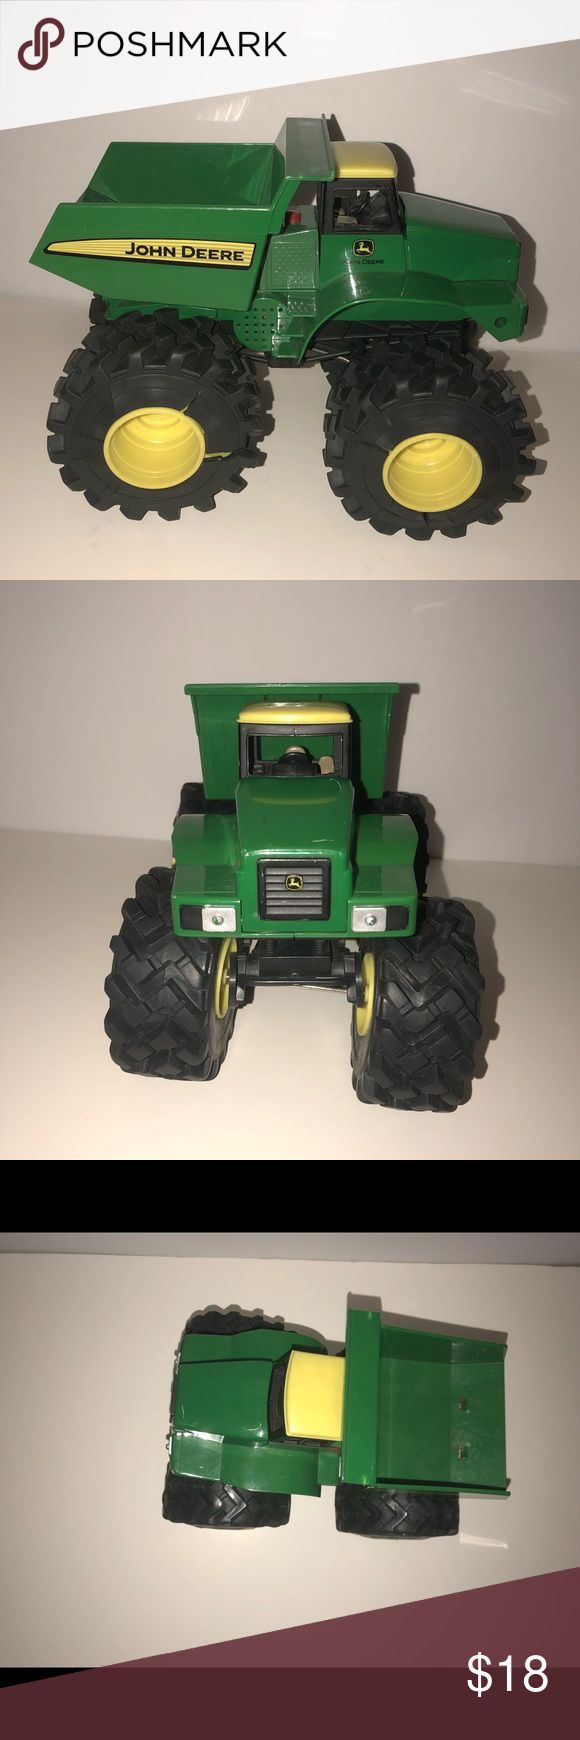 John Deere dump truck tractor John Deere green and yellow dump truck. Great condition! John Deere Other